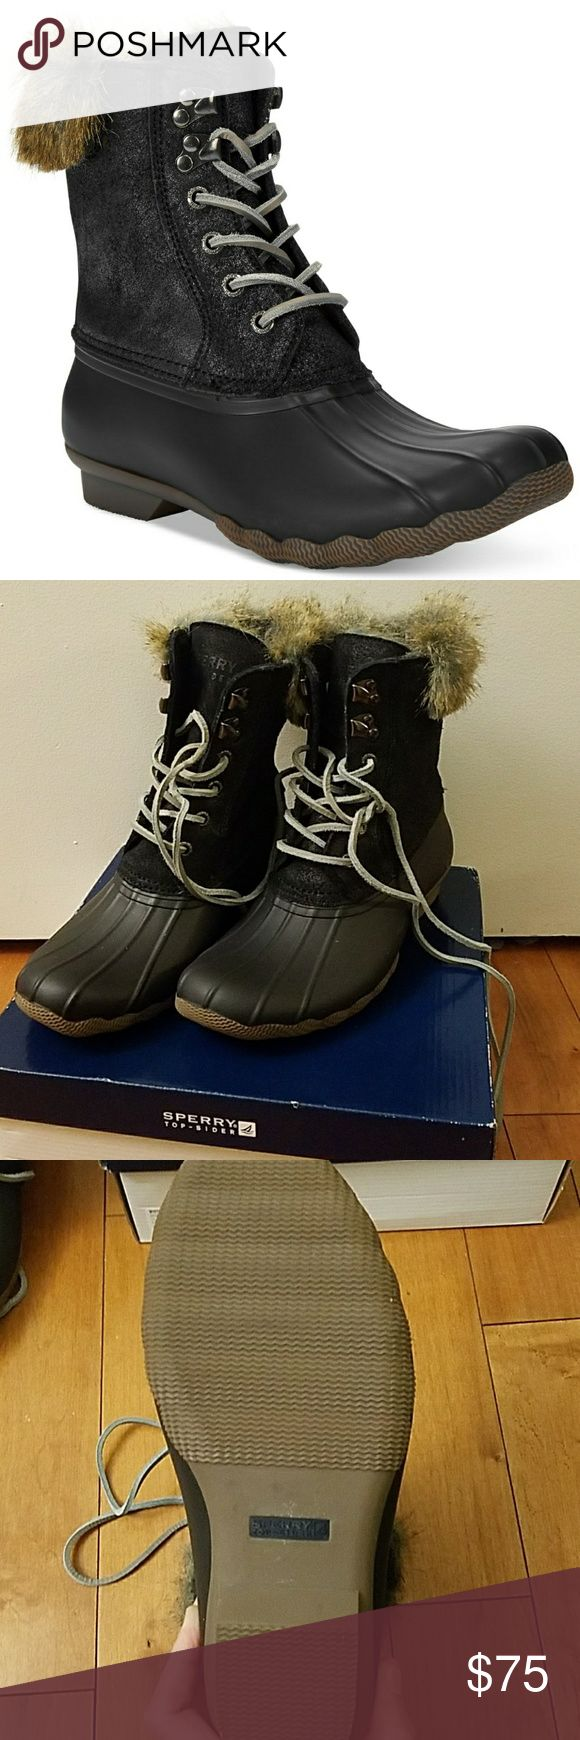 NWT Sperry White Water Black Duck Boots NWT Sperry Top Sider White Water Black Duck Boots.   Size 6.5. Sperry Shoes Winter & Rain Boots